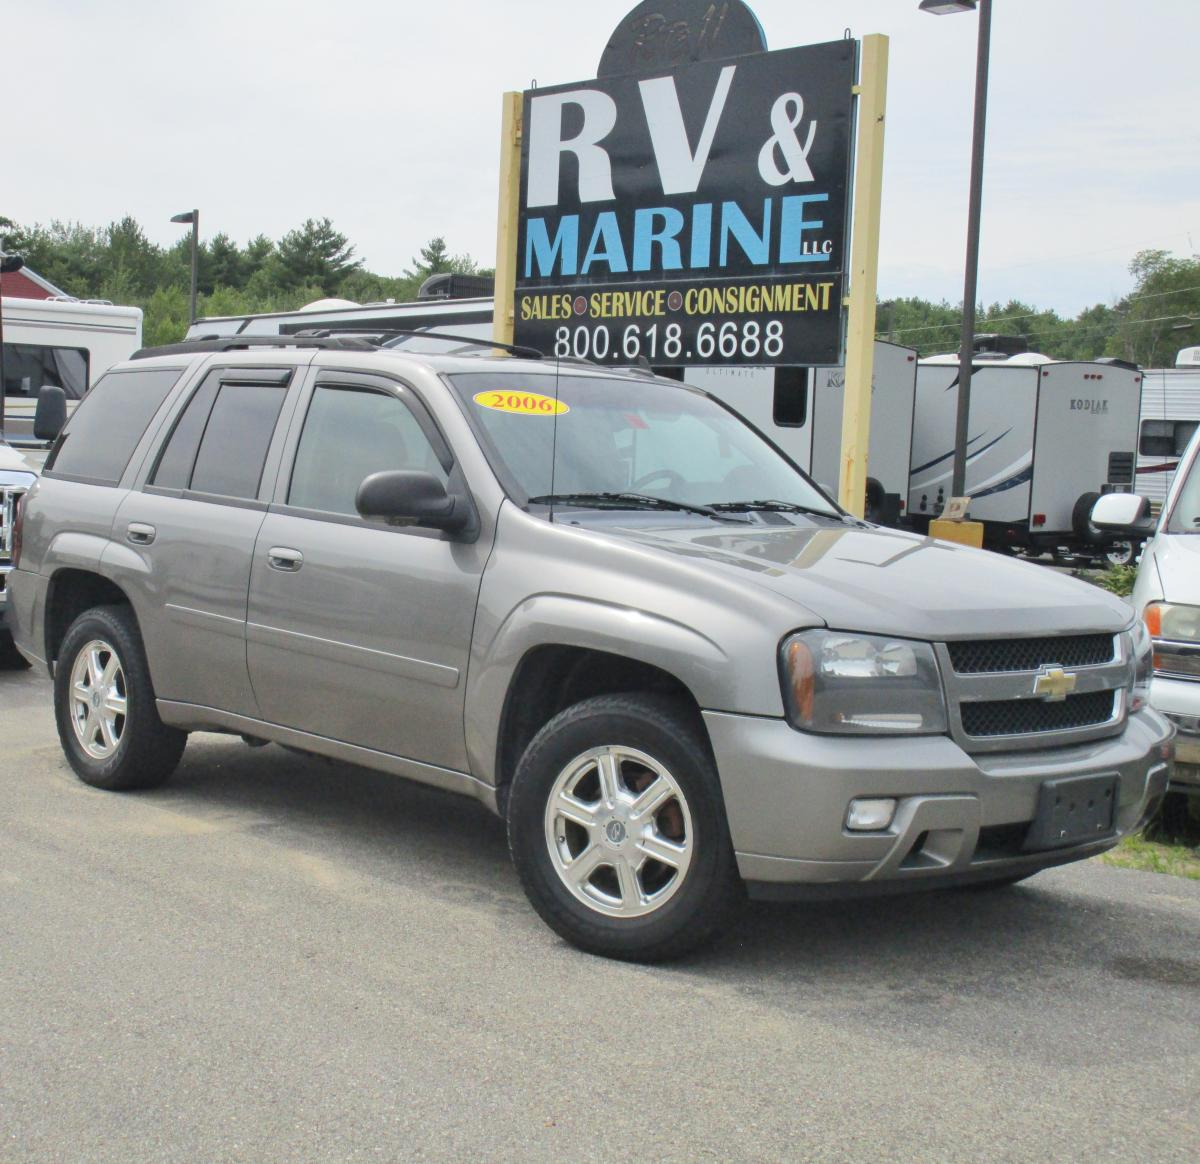 All Chevy chevy 2006 : 2006 CHEVY TRAILBLAZER 4WD FOR $6,995 IN ROCHESTER, NH